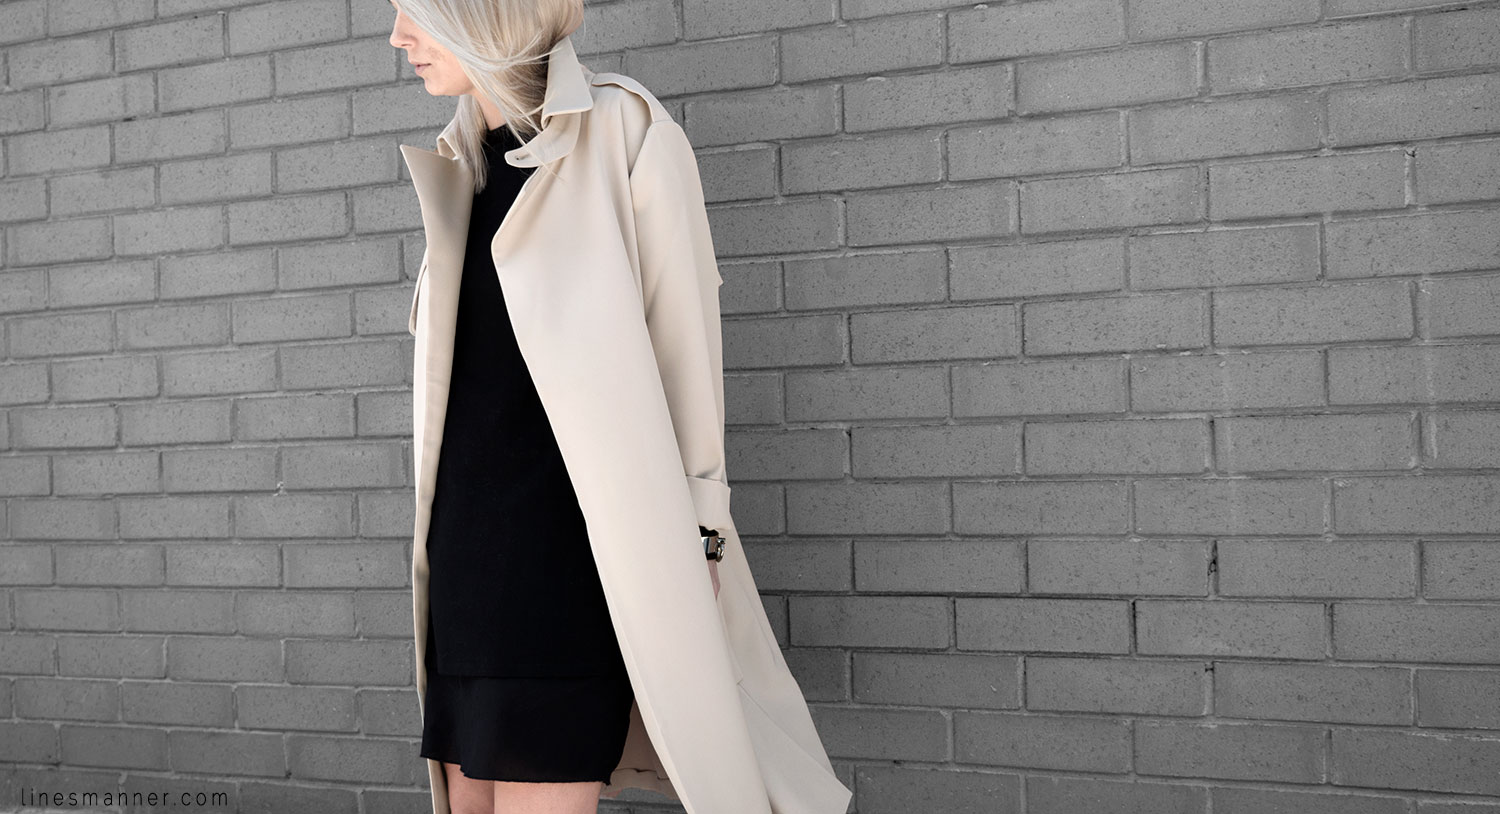 Lines-Manner-Trench-Minimal-Outfits-Fashion-Essentials-Classics-Timeless-Versatile-Details-Hues-Nonchalance-Elegance-Casual-Effortless-5